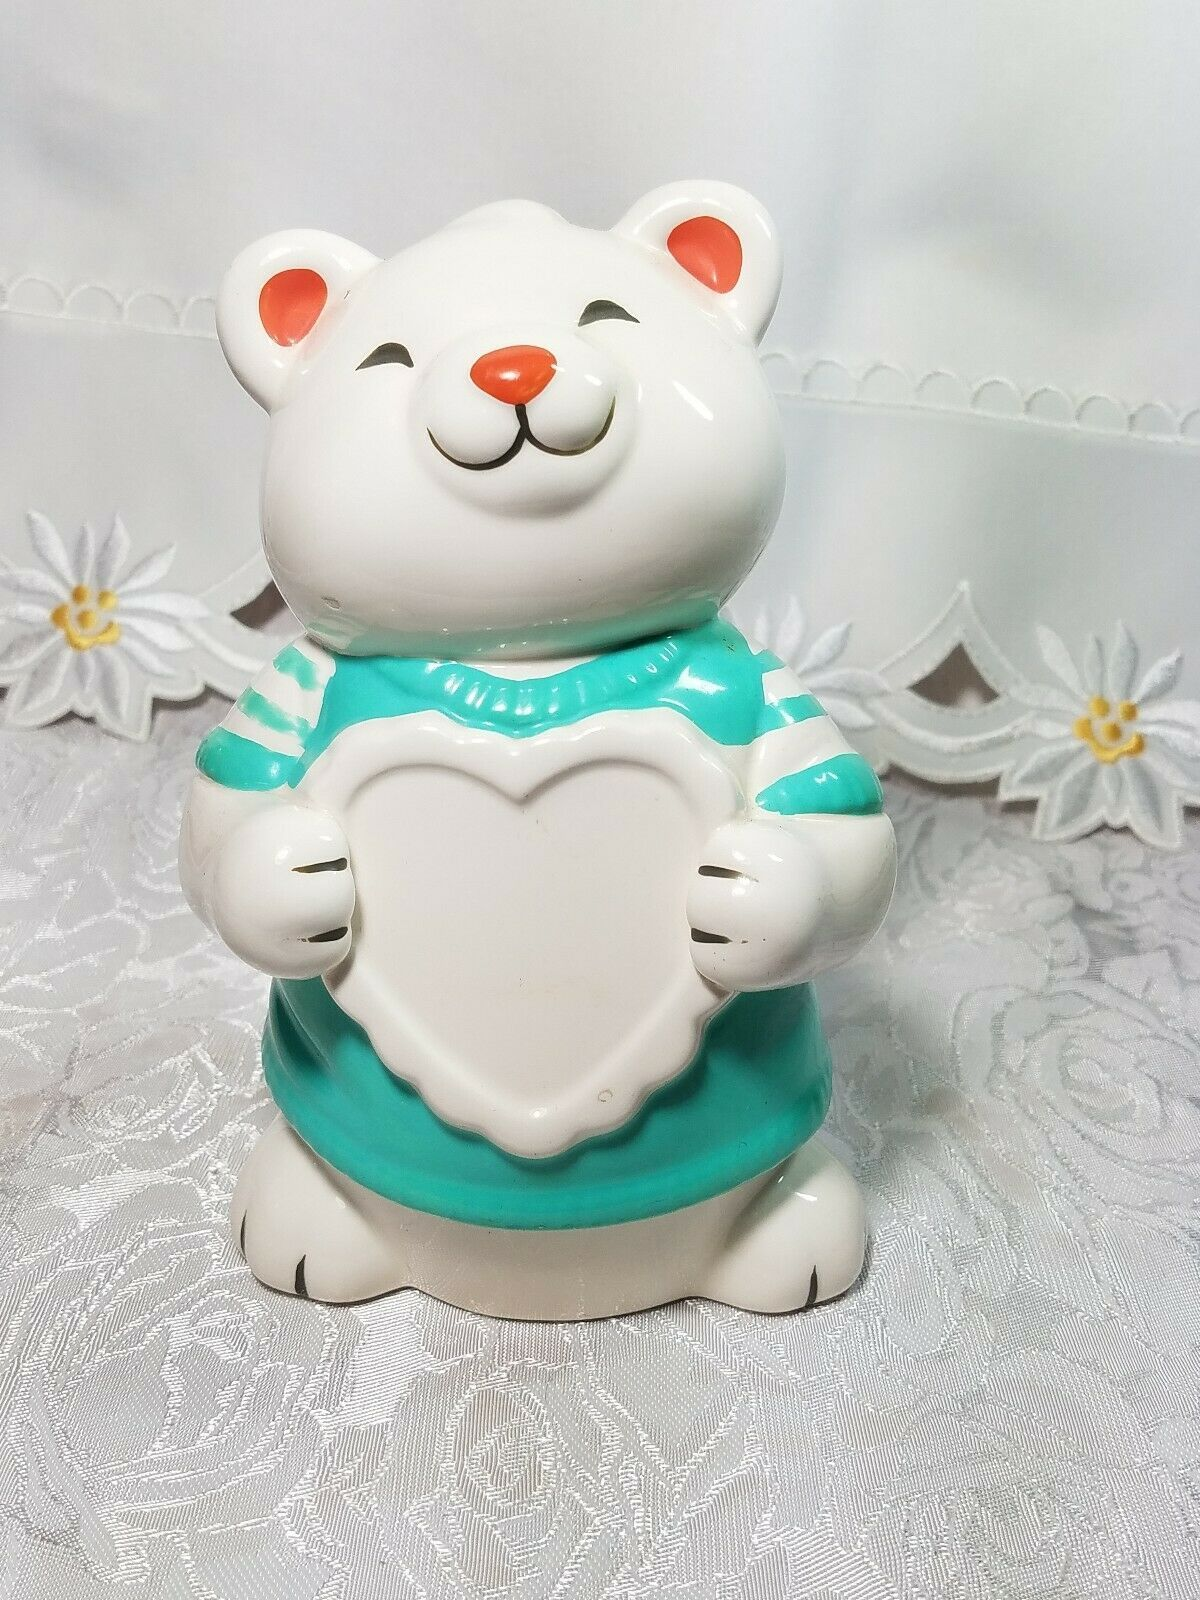 Vintage Teddy Bear Bank Figurine White Heart Hand Painted Ceramic